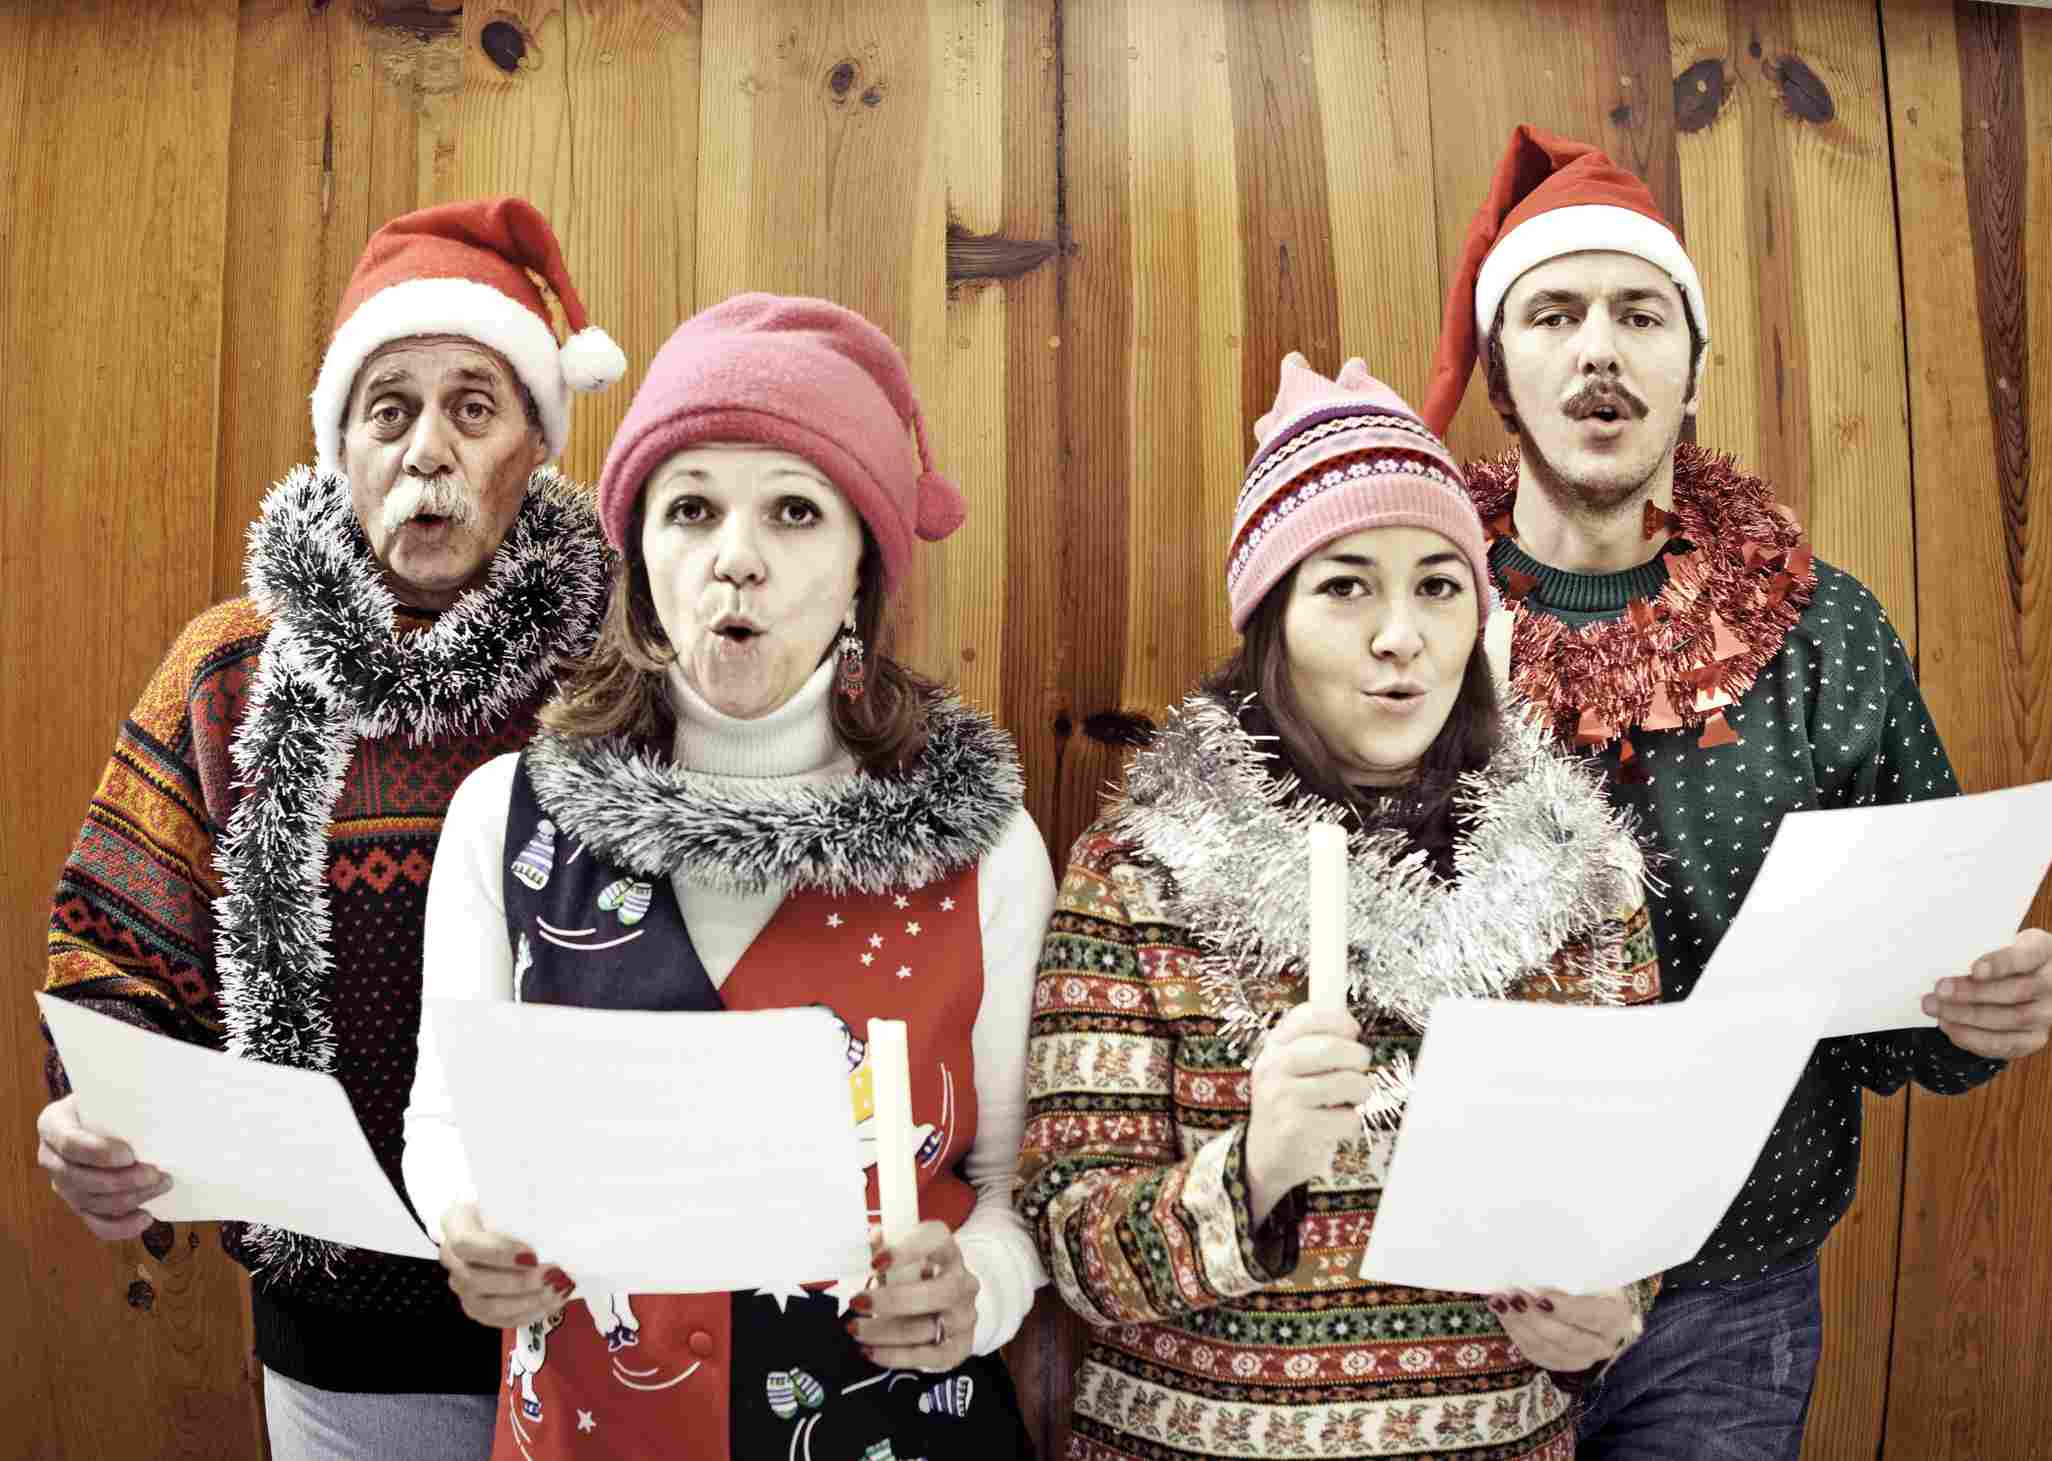 Download Free Christmas Songs at ChristmasGifts com